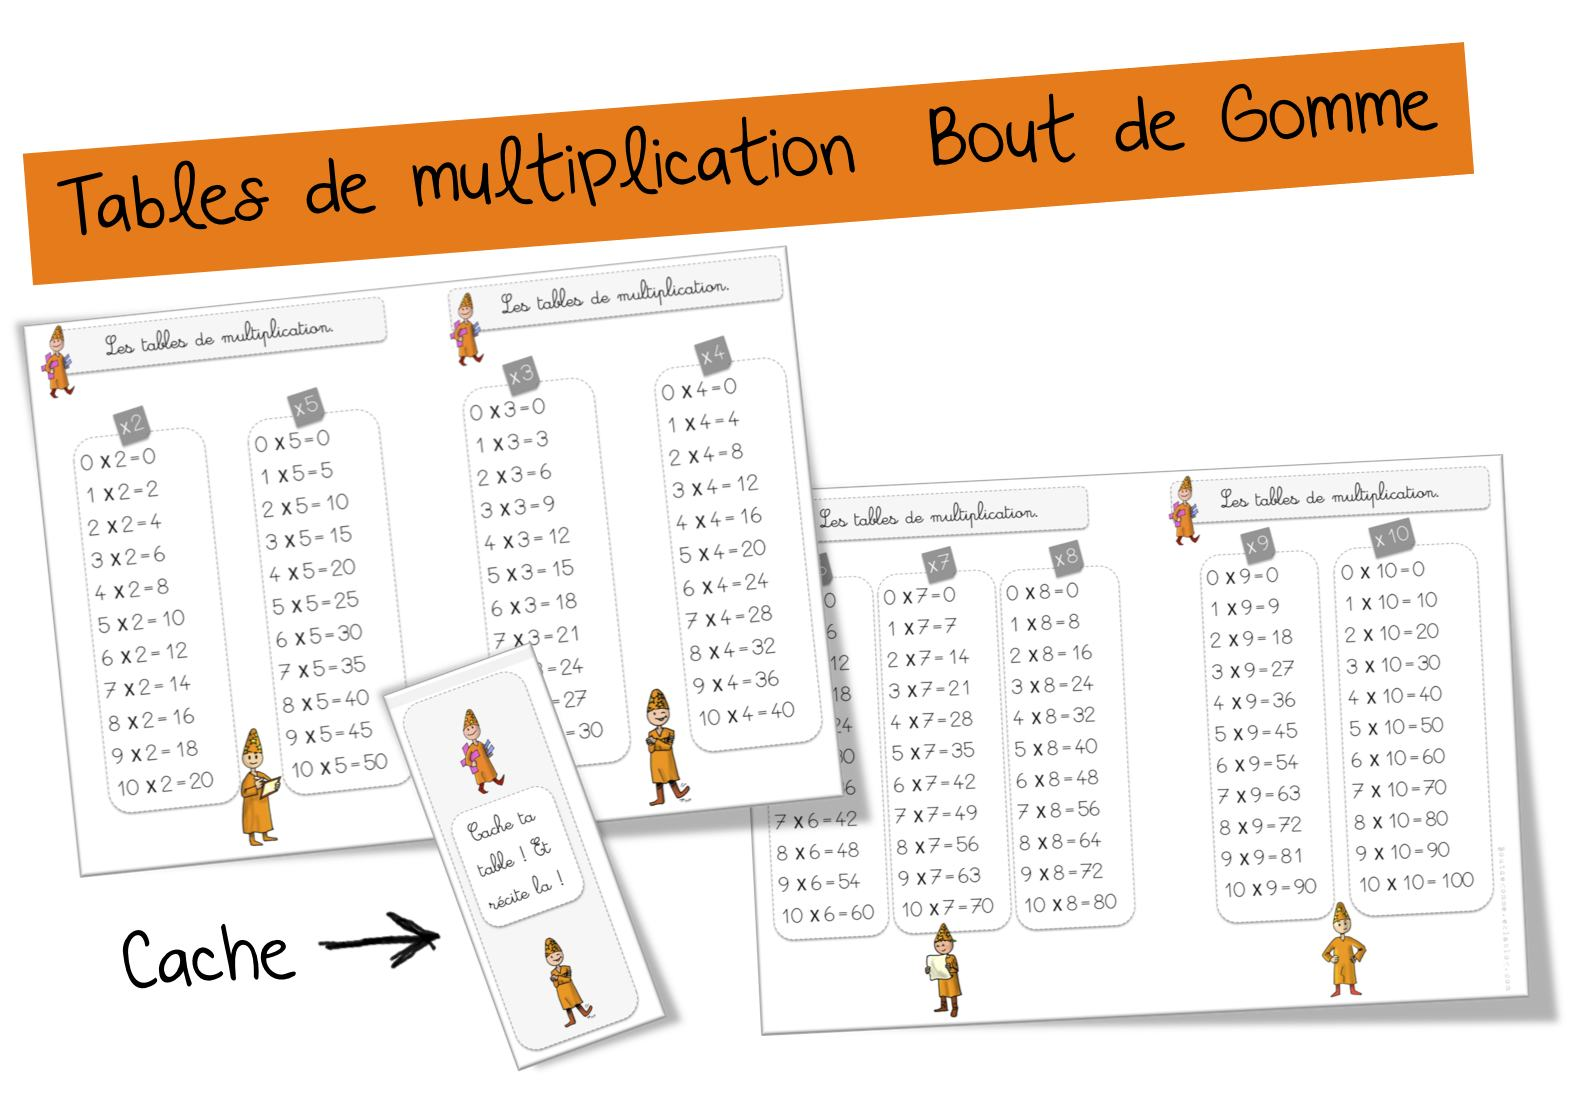 Jeux de table de multiplication gratuit ce2 for Mathematique ce2 multiplication